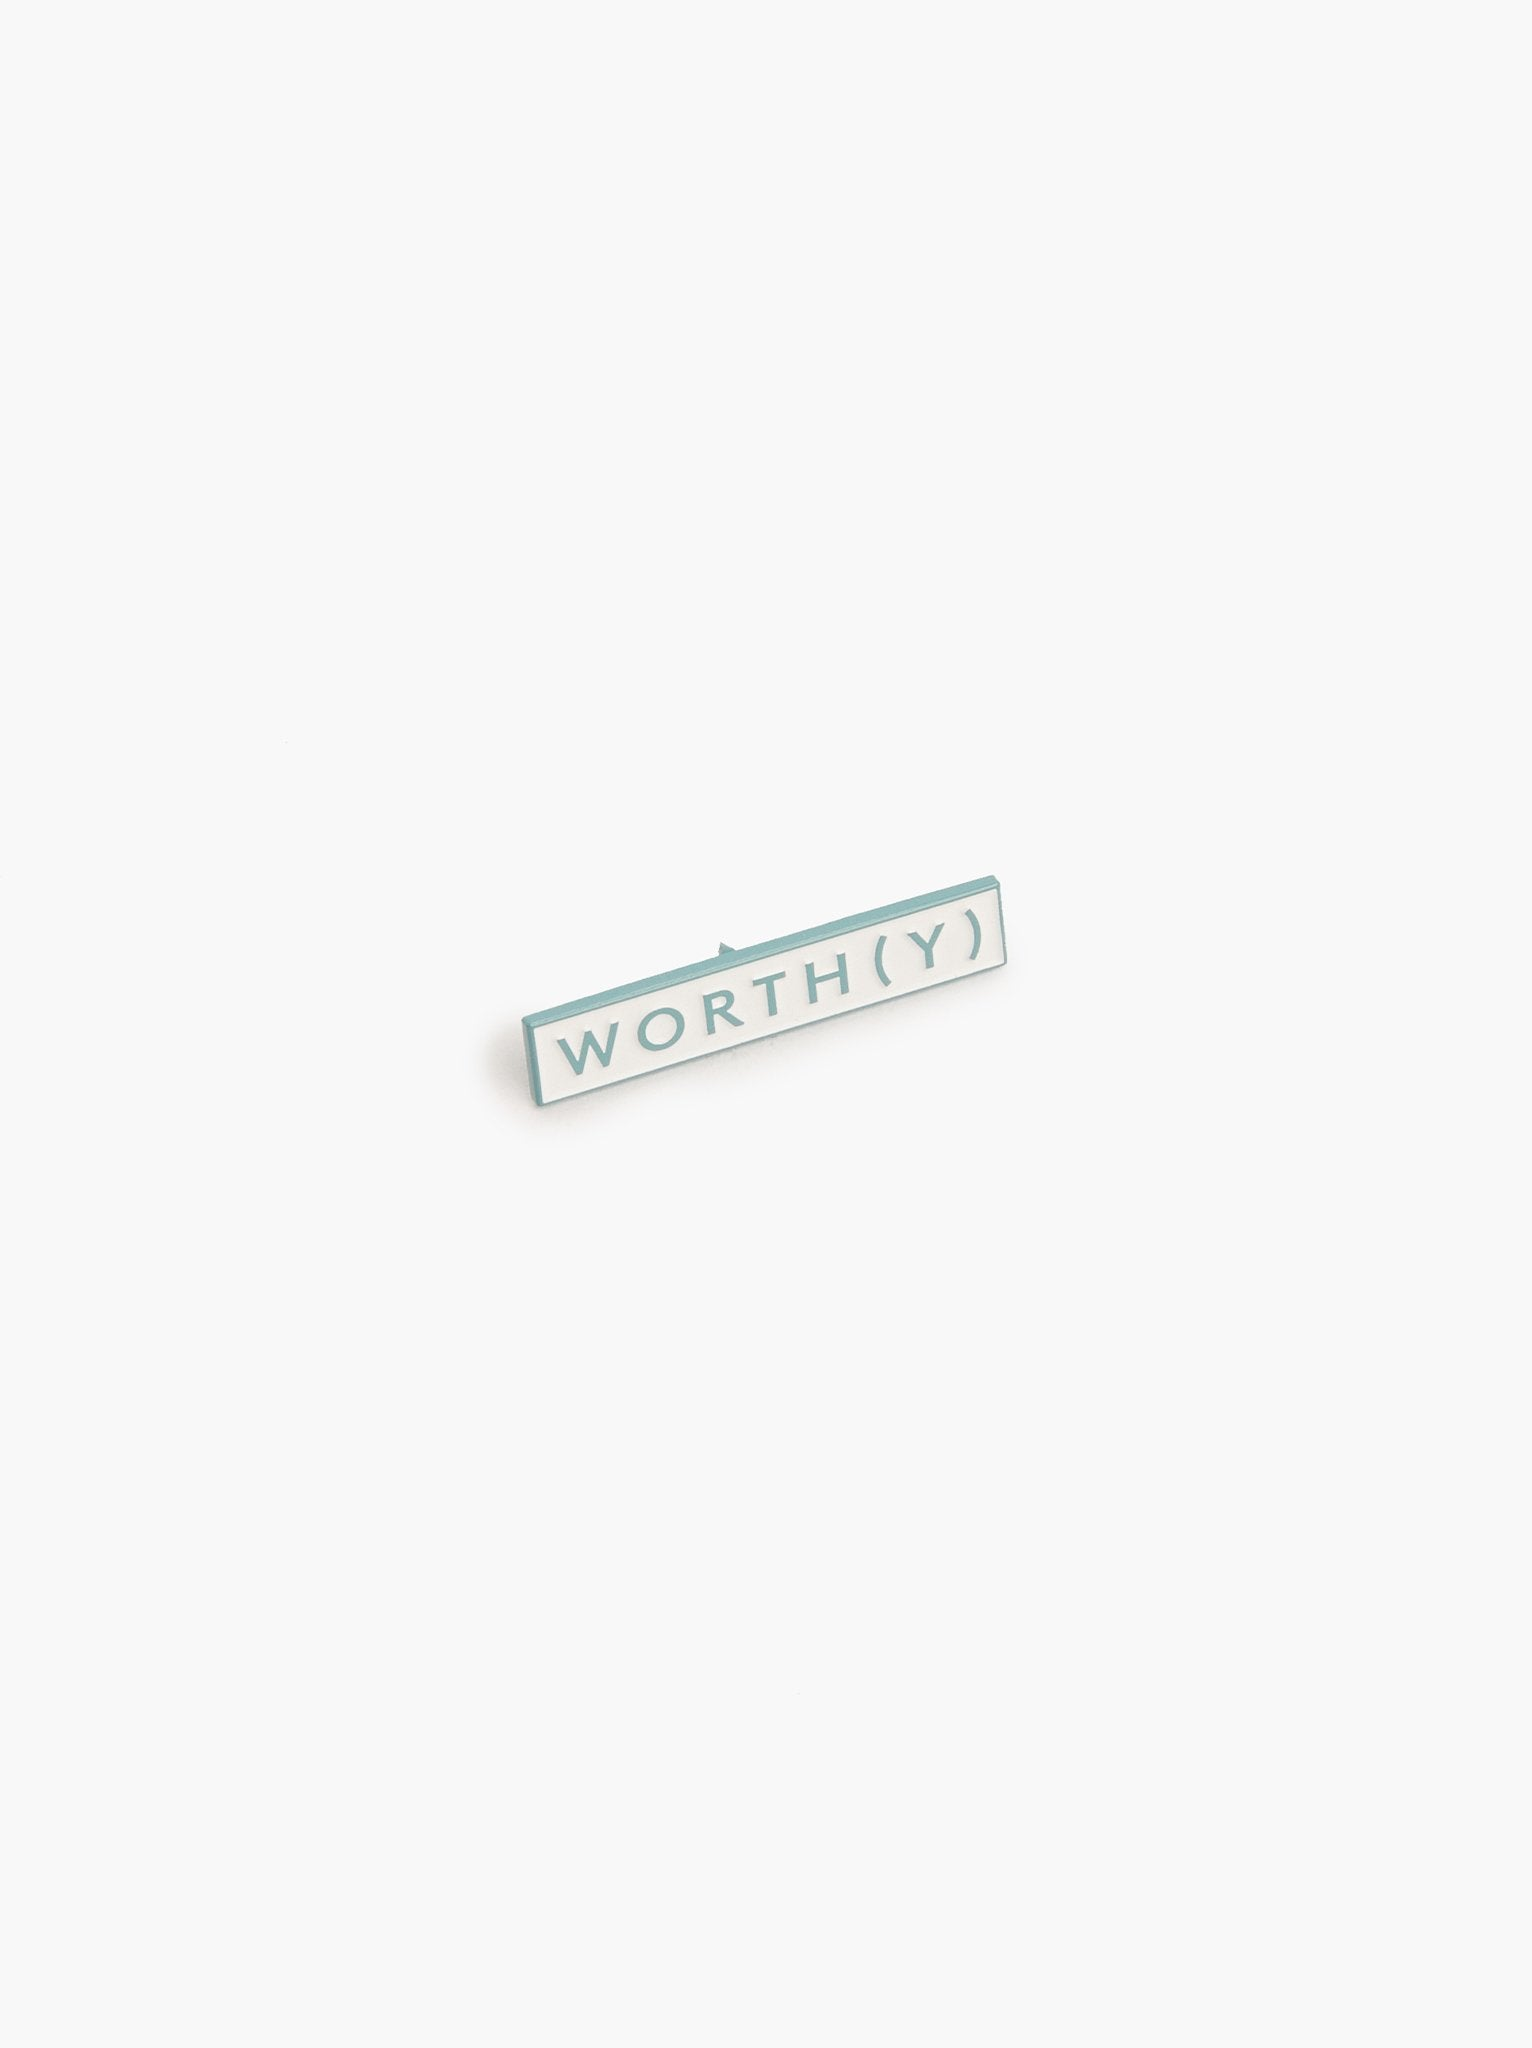 Community Collection Enamel Pin: Worthy